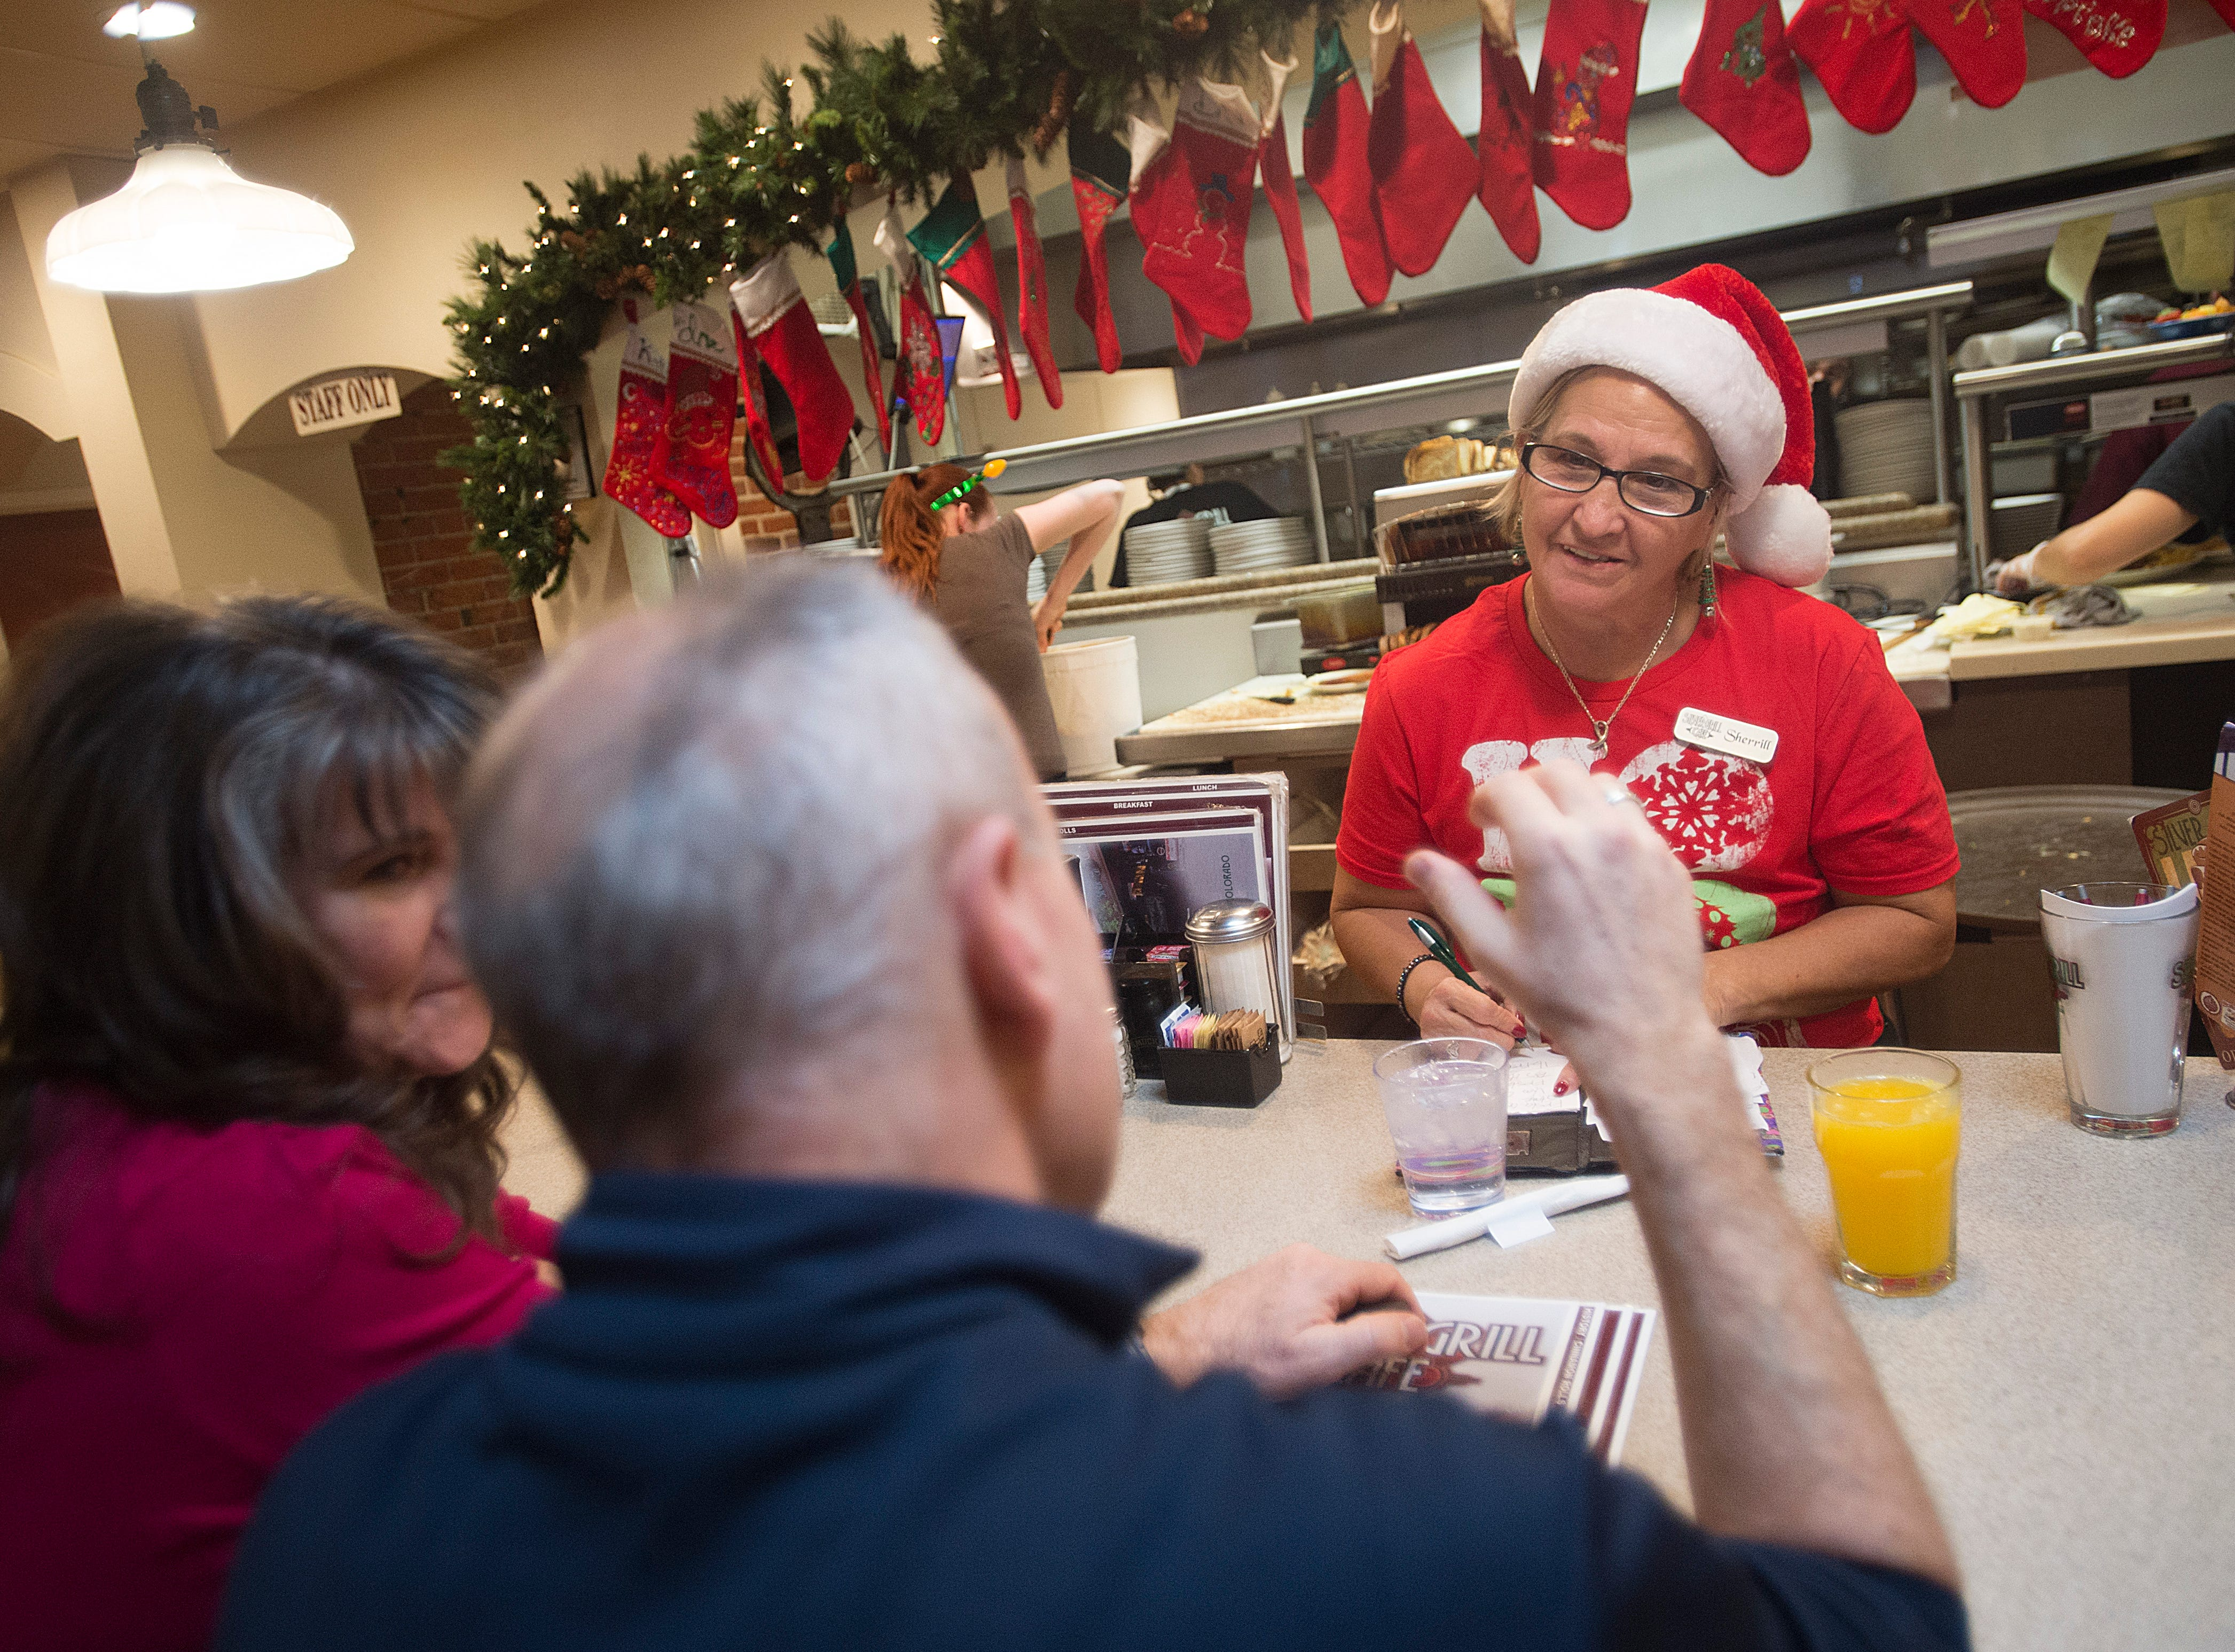 Sherrill Lewis wears a Santa hat as she takes a brunch order behind the counter at Silver Grill Cafe in Old Town on Monday, December 24, 2018.